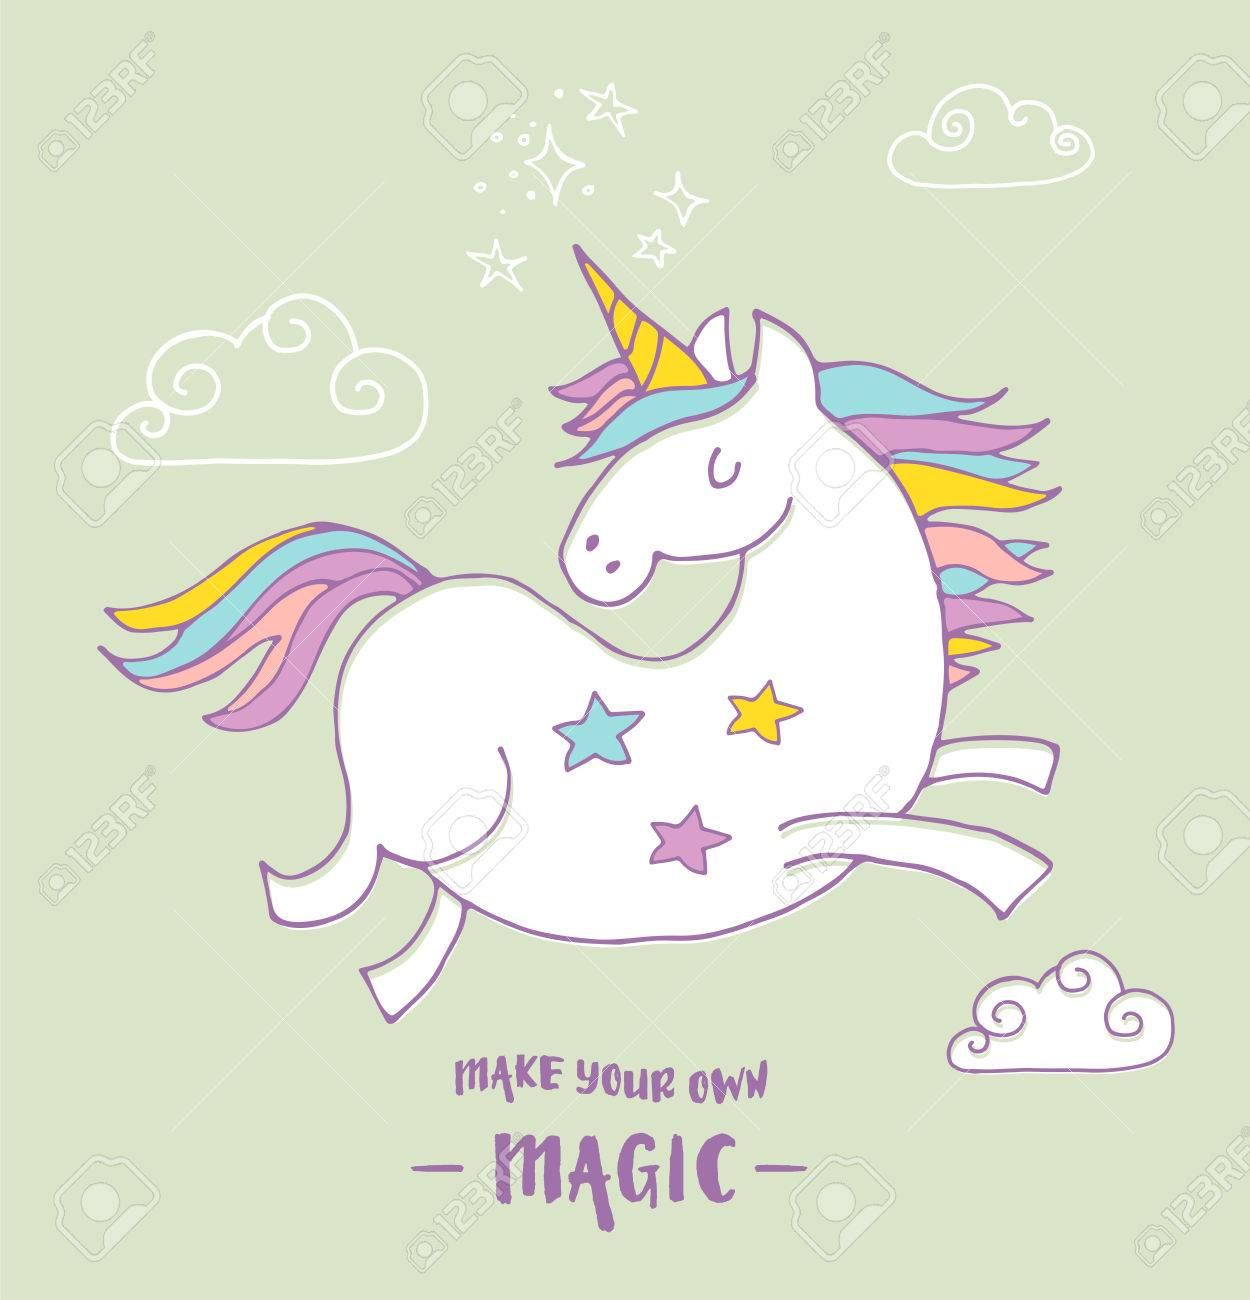 poster birthday card ; 51065574-cute-magic-unicon-and-rainbow-poster-greeting-birthday-card